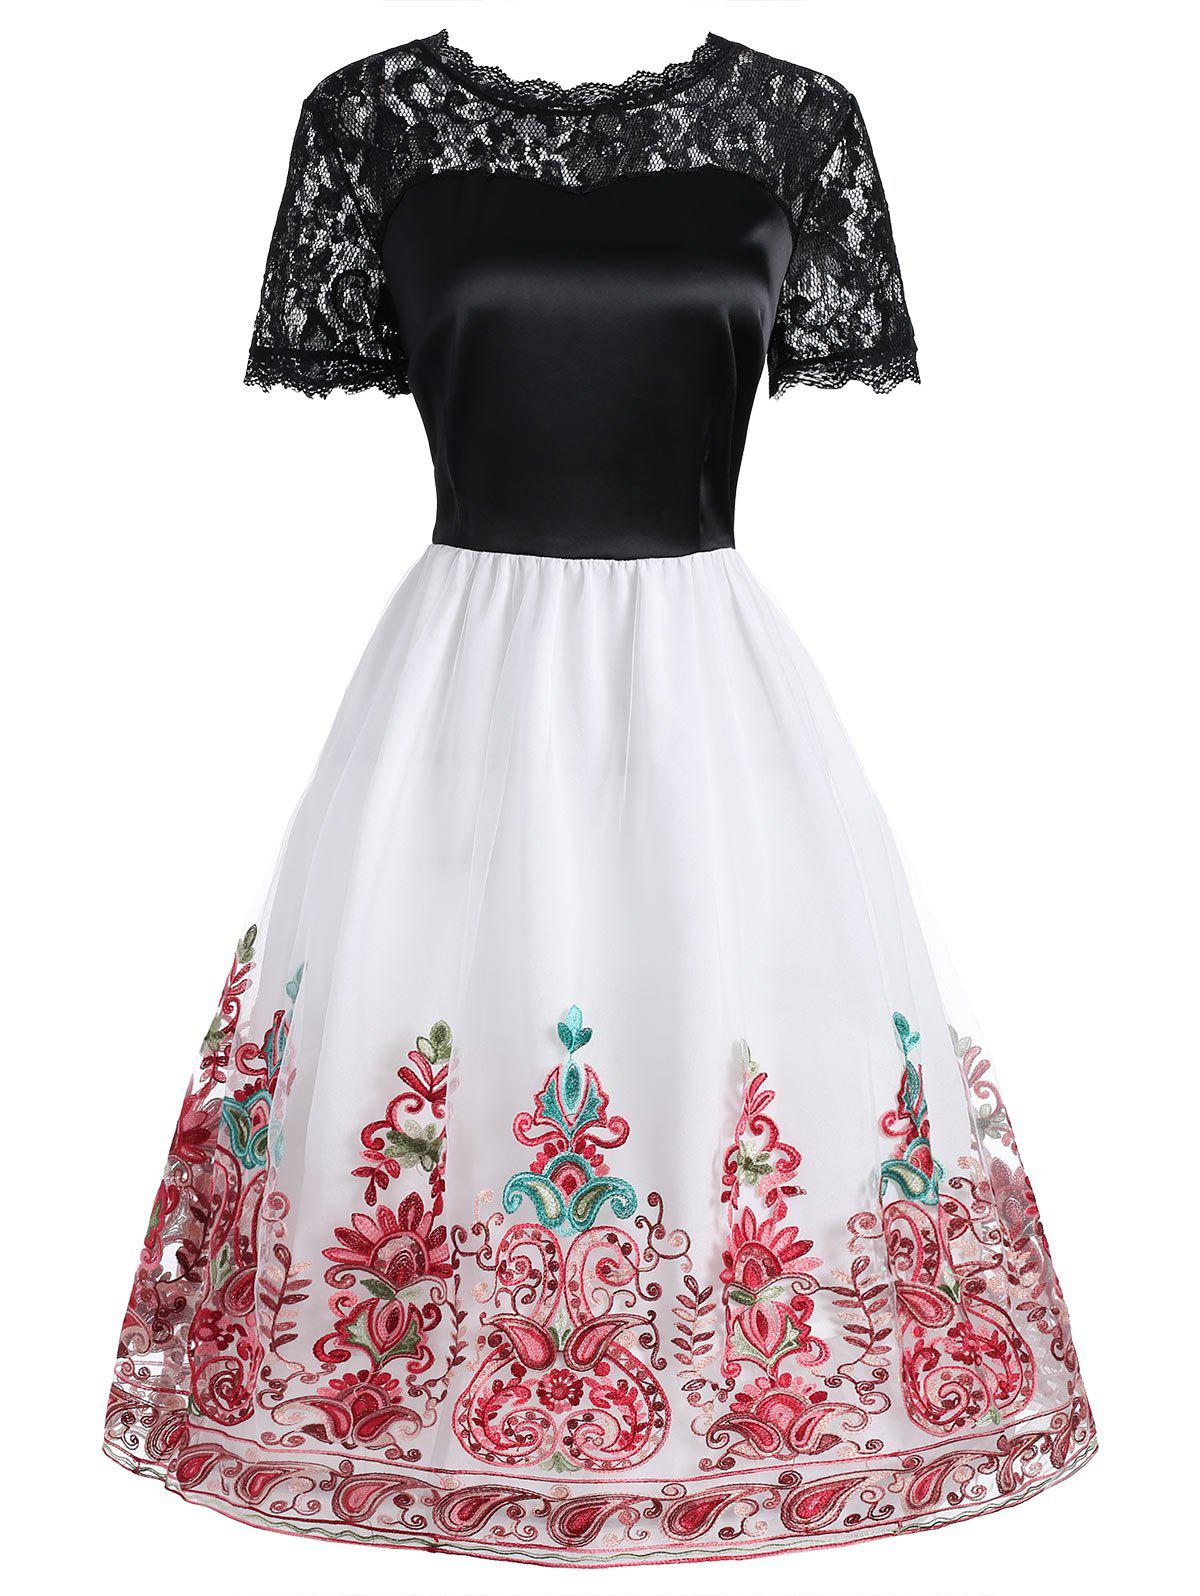 Discount Lace Panel Embroidered Mesh Vintage Dress